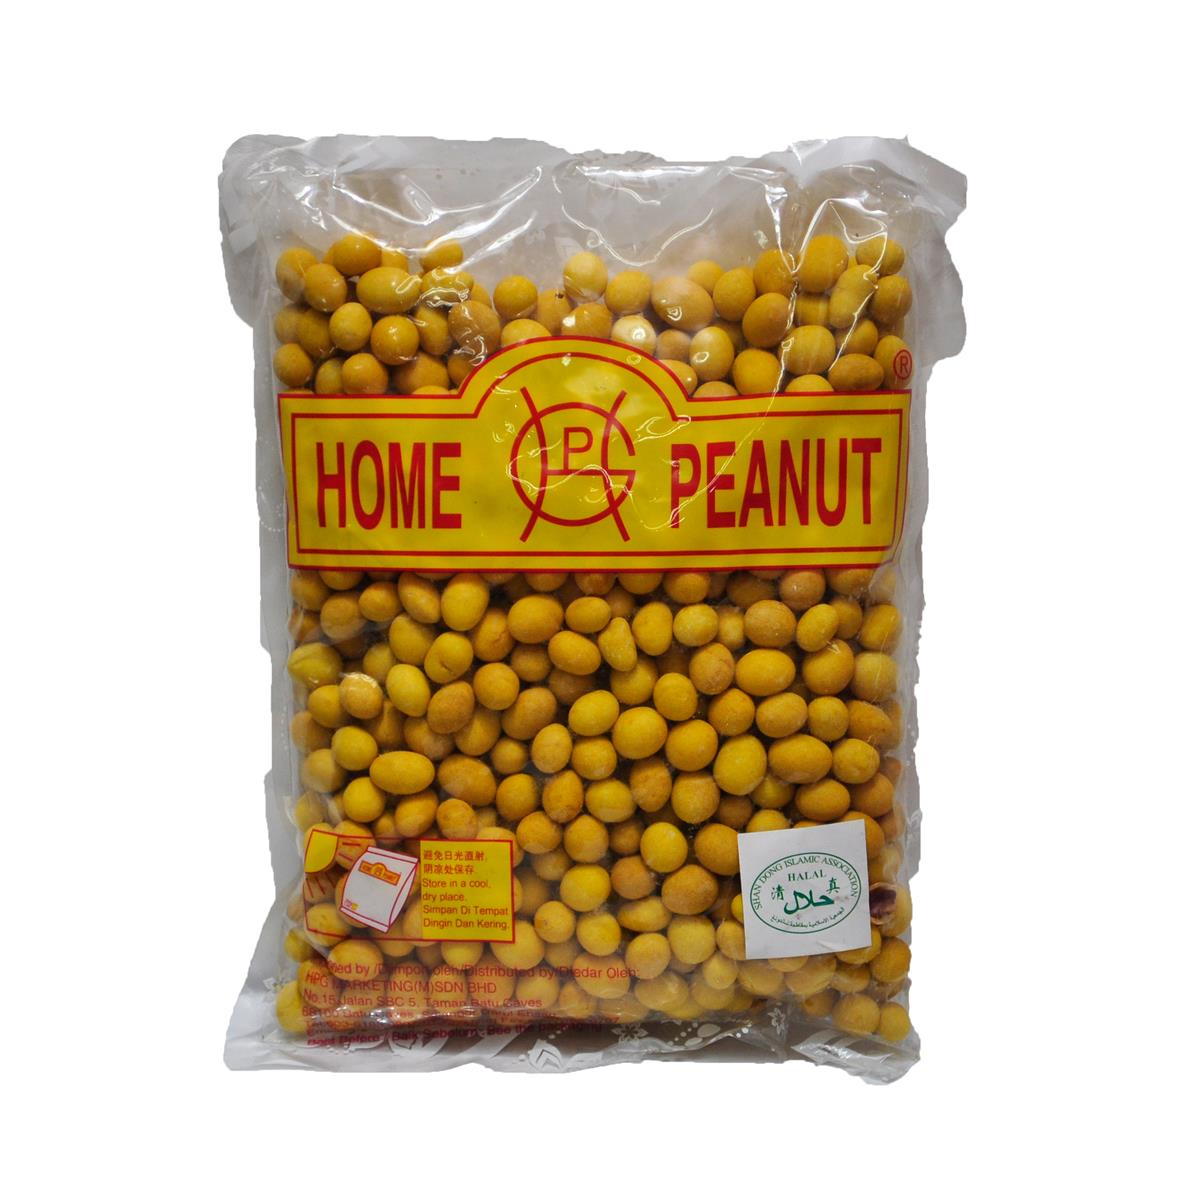 Home Peanut Garden Fruit Nut 700g